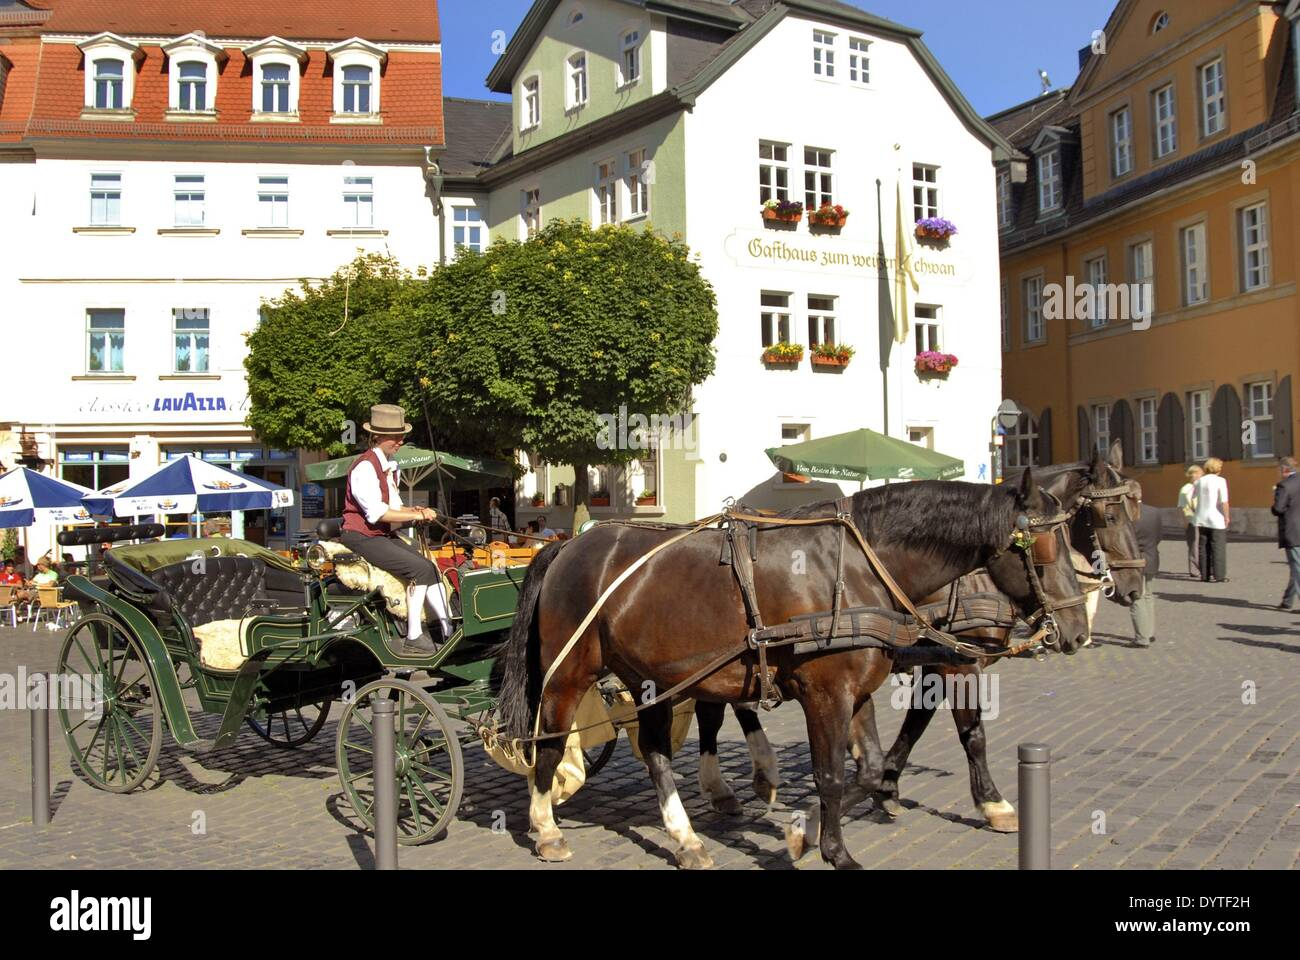 Coachman in the marketplace of Weimar, 2006 - Stock Image